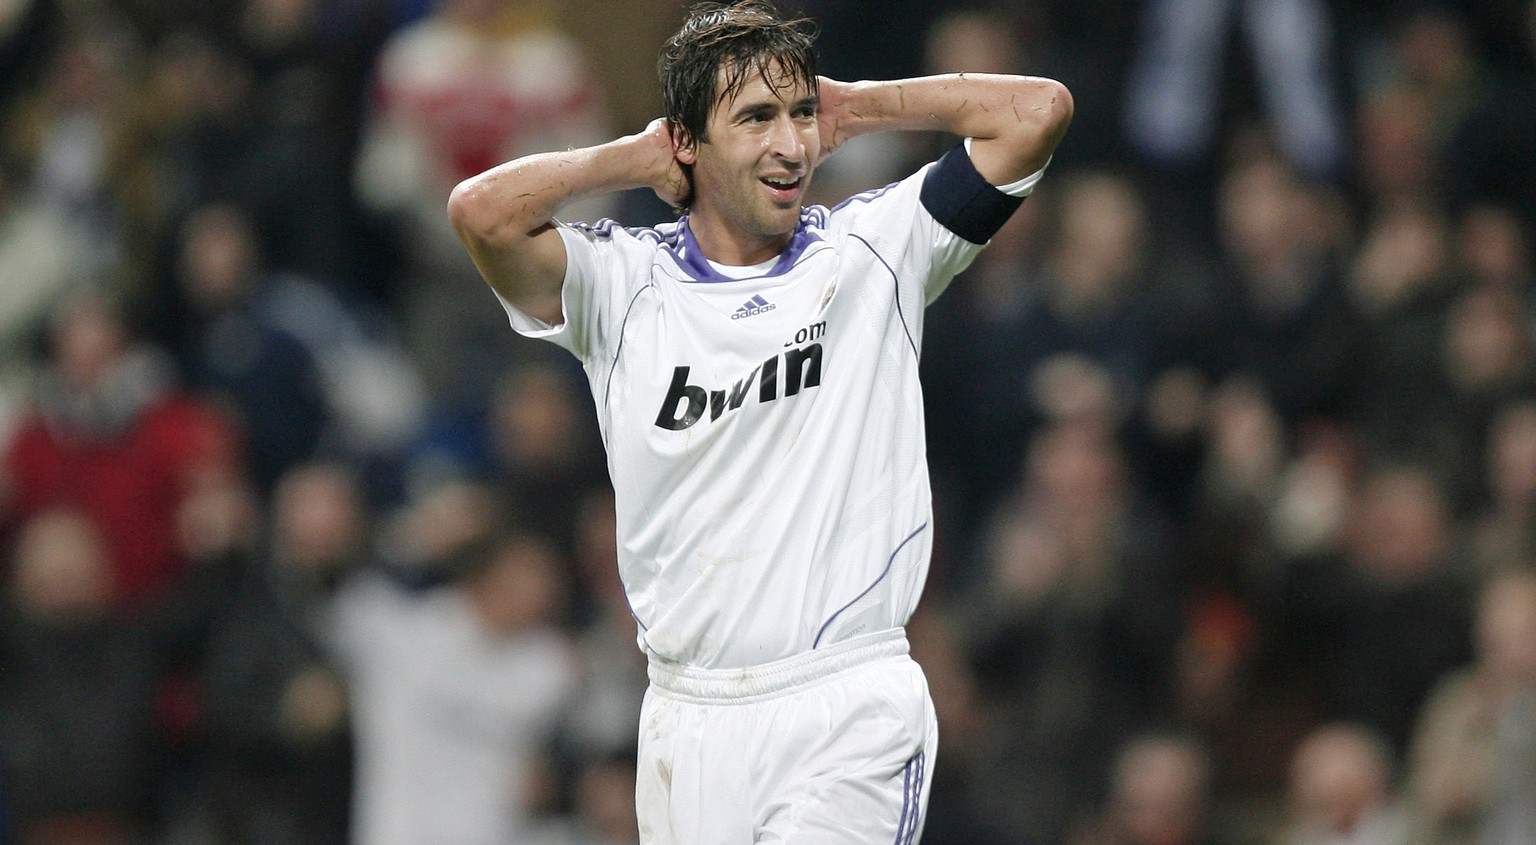 MADRID, SPAIN - DECEMBER 11:  Raul Gonzalez of Real Madrid reacts during the UEFA Champions League Group C match between Real Madrid and Lazio at the Santiago Bernabeu stadium on December 11, 2007 in Madrid, Spain. Real Madrid won the match 3-1.  (Photo by Jasper Juinen/Getty Images)